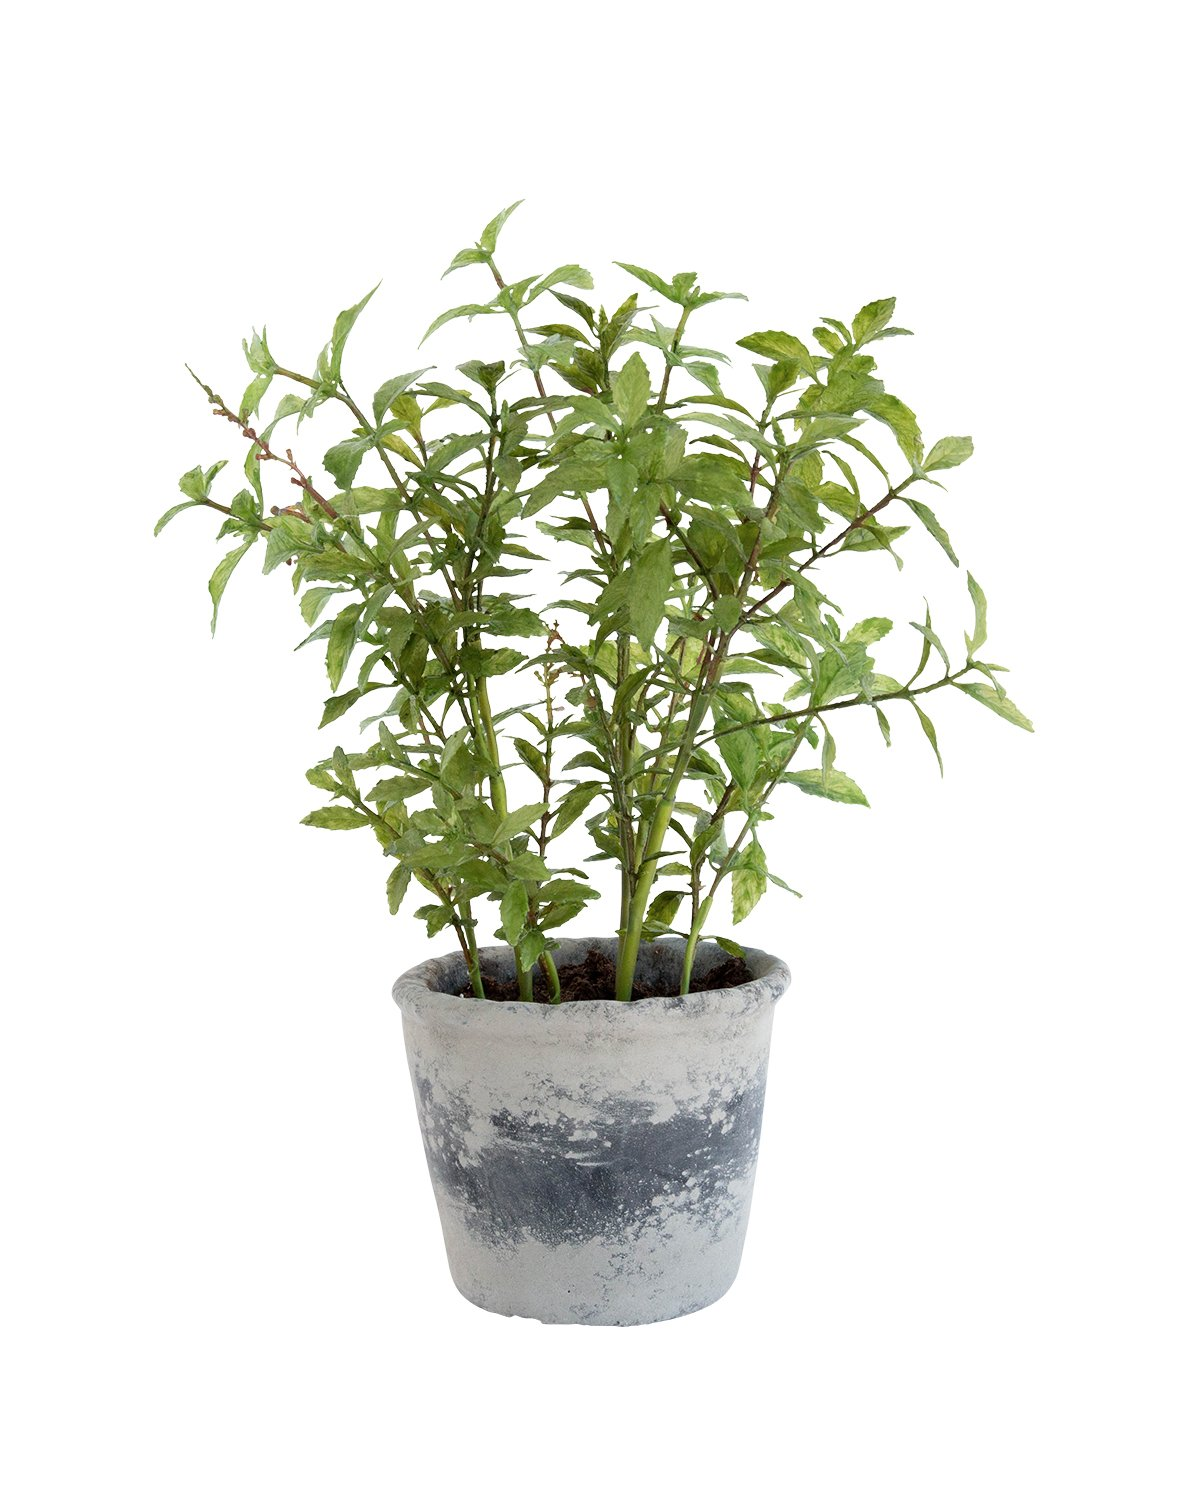 Faux_Mint_Potted_Herb_1.jpg